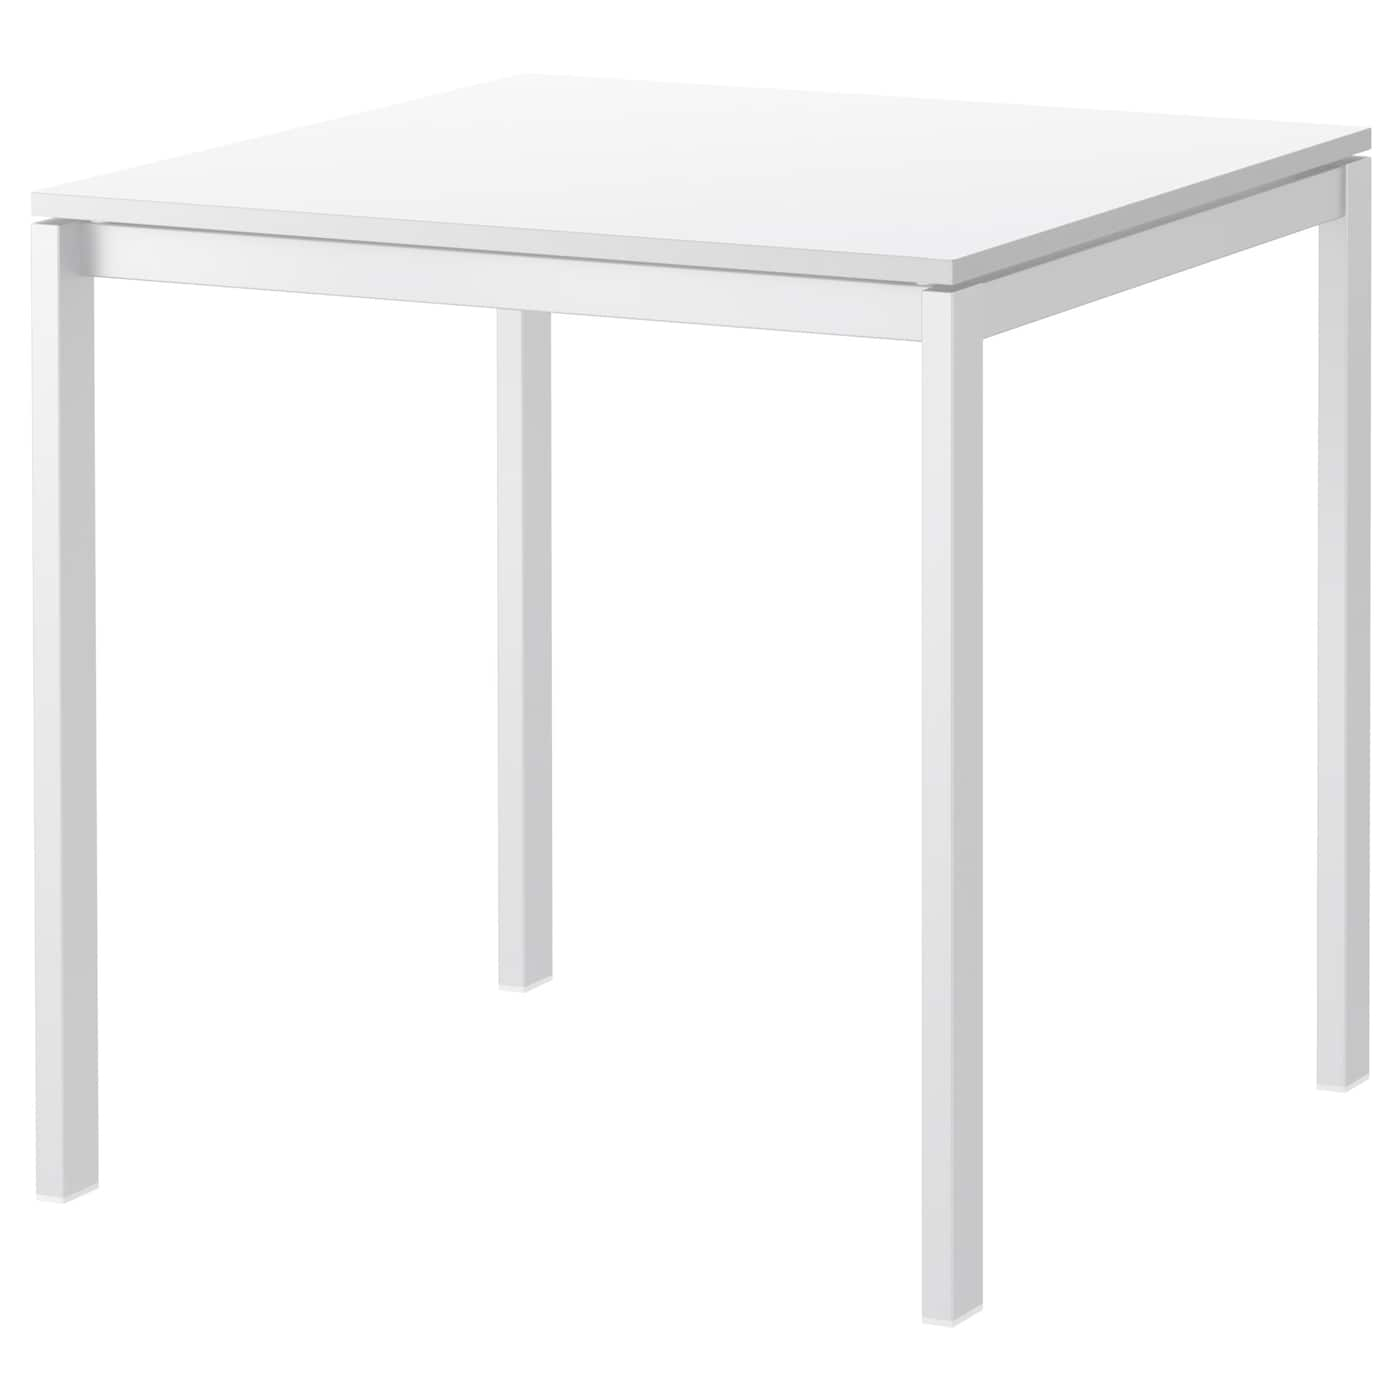 Melltorp table white 75x75 cm ikea for Table extensible 16 personnes